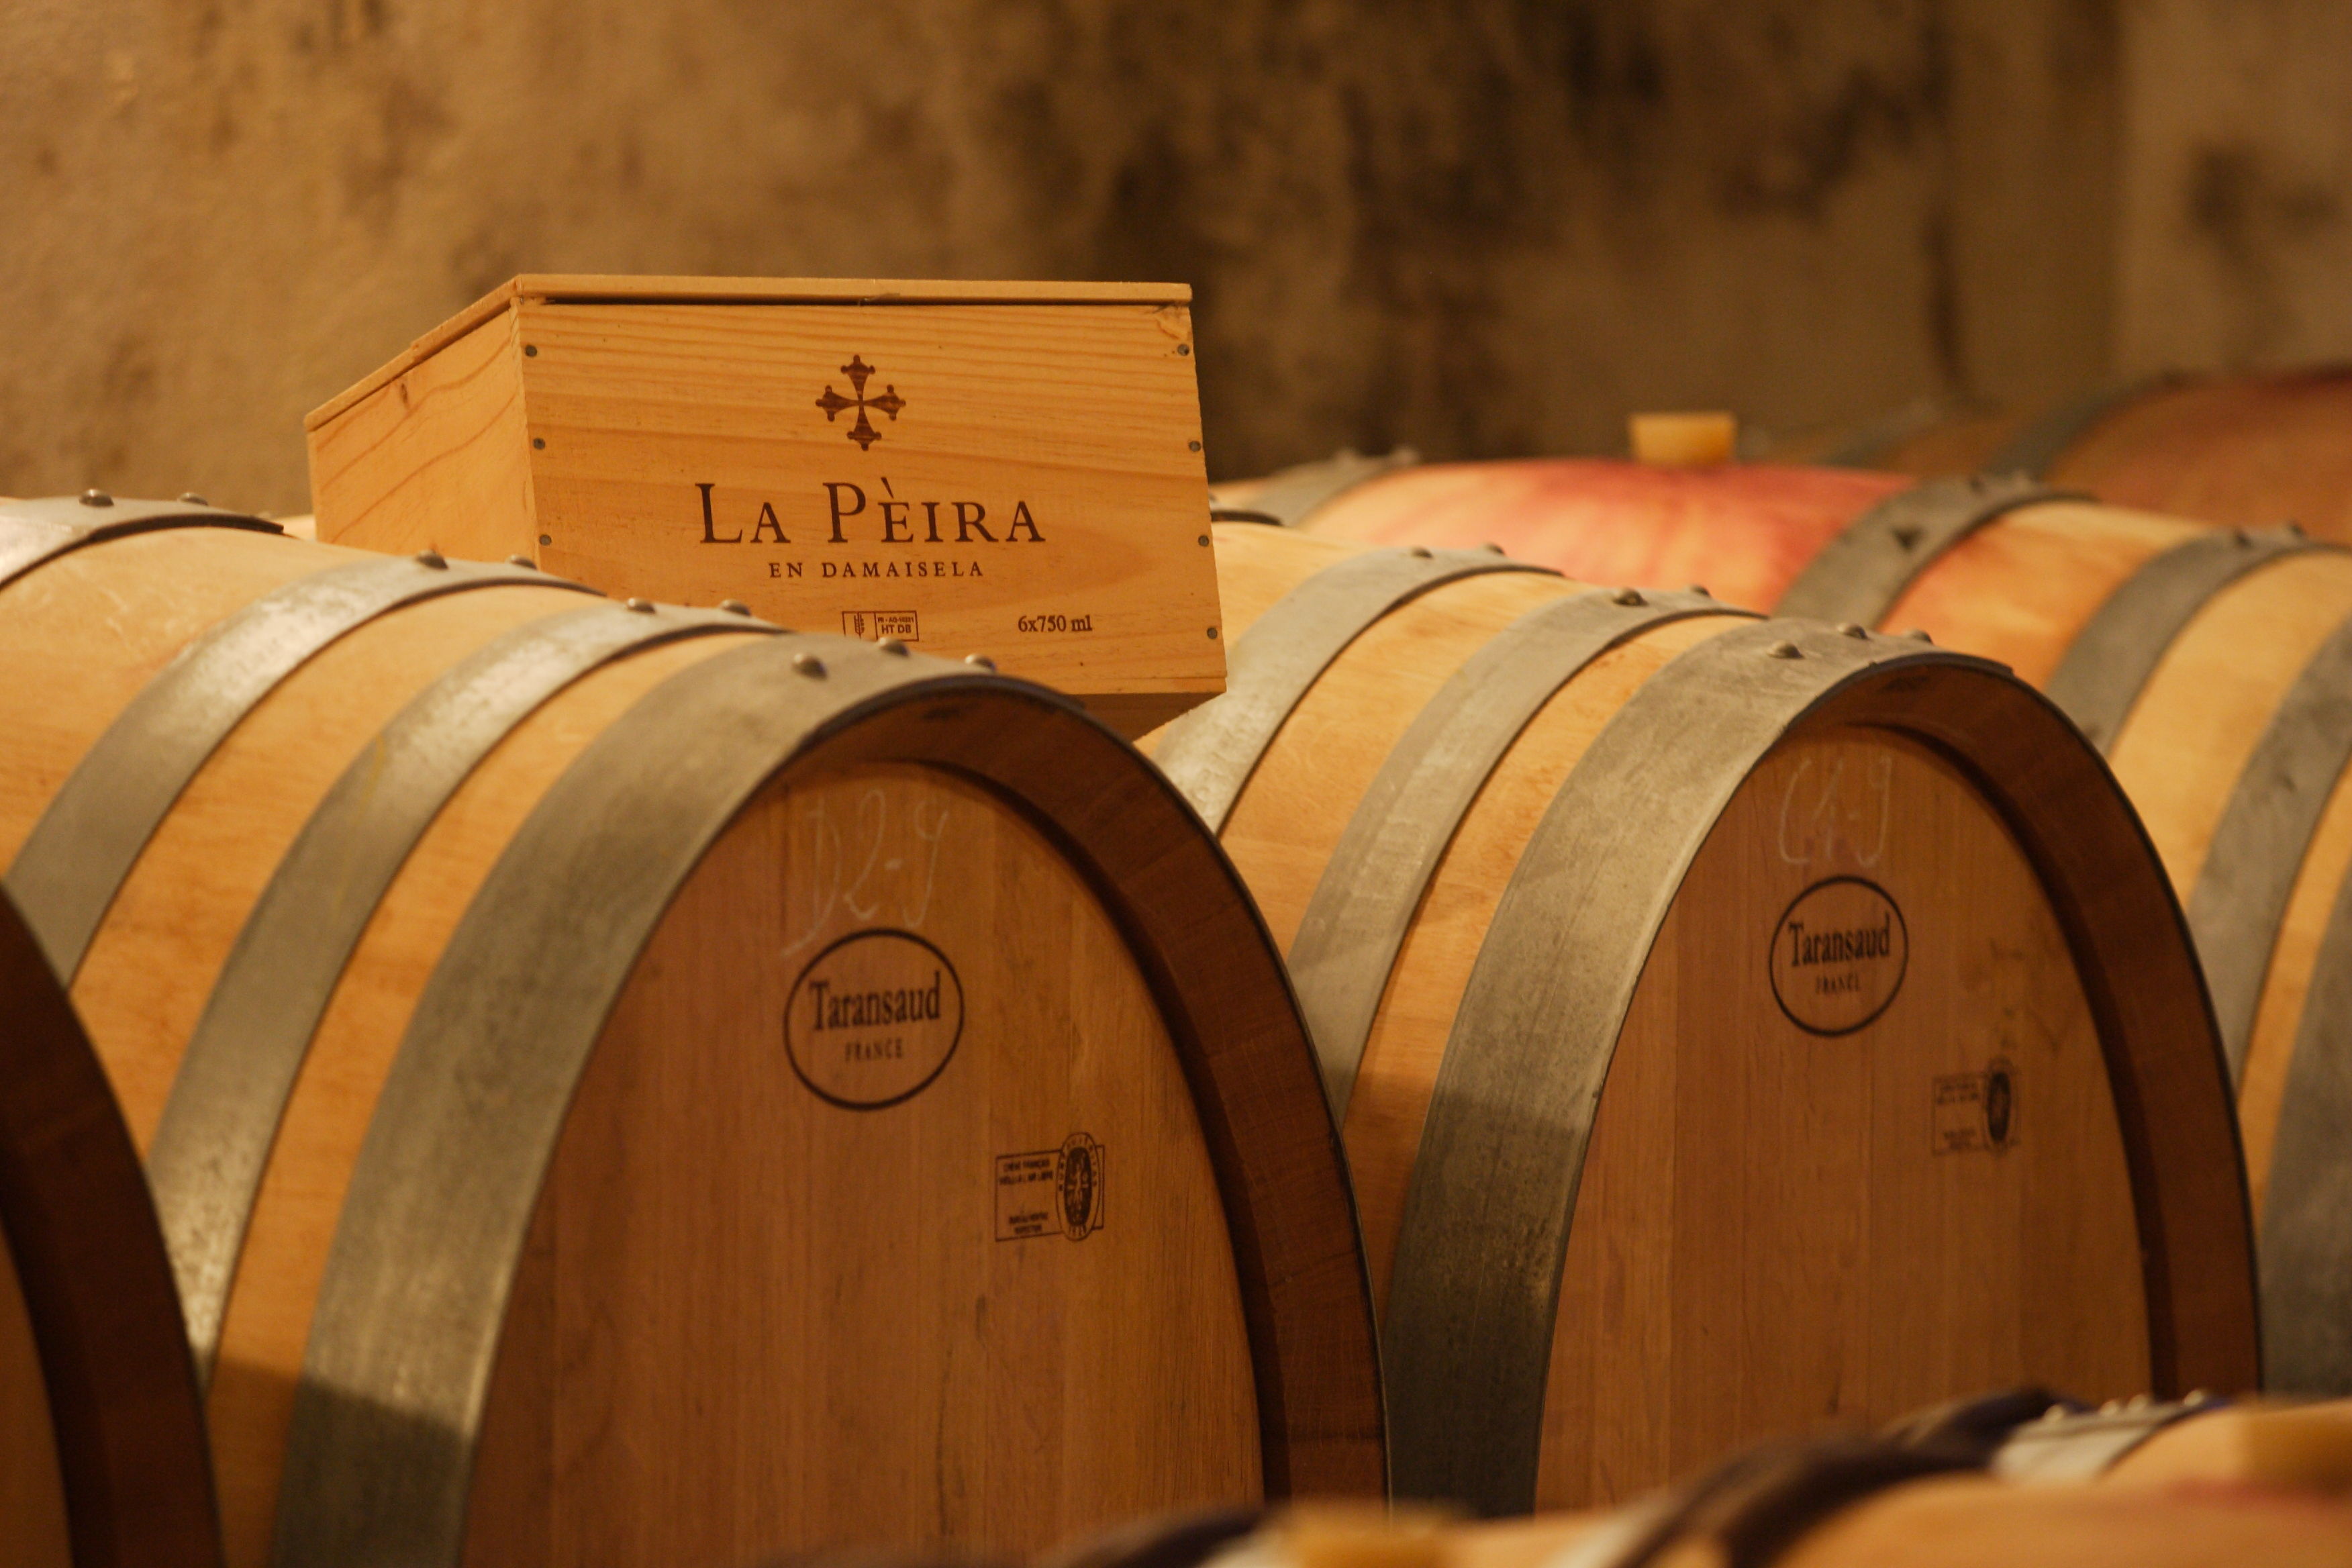 La Peira in Cellartracker's top-rated Wines for 2010